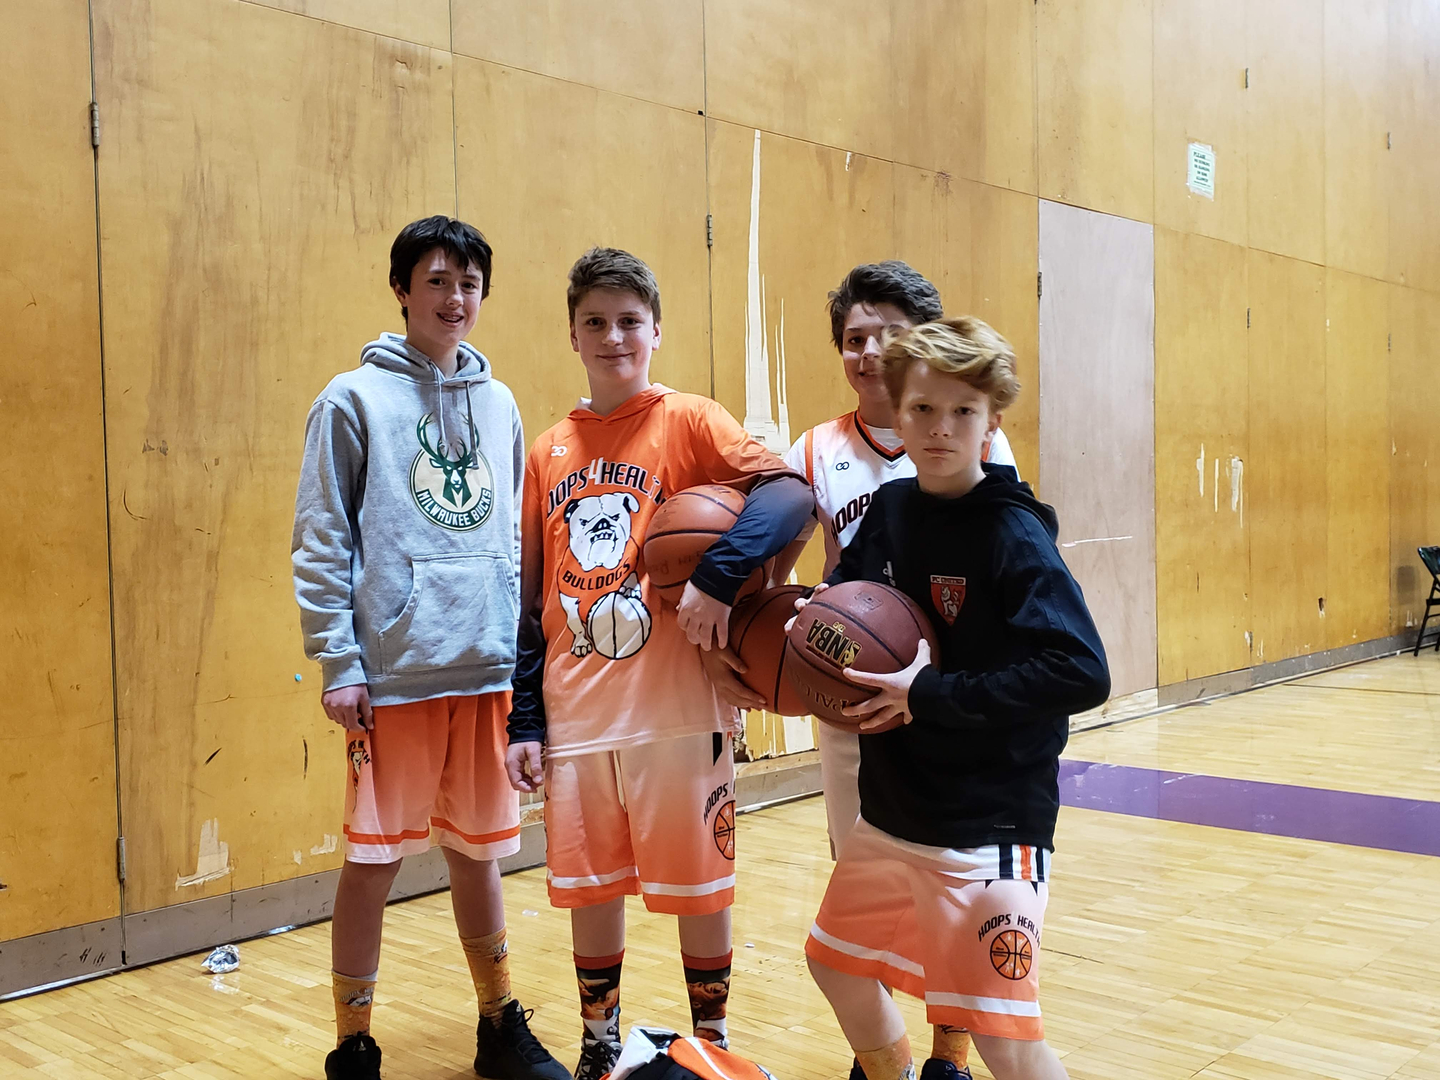 bef0d13c1ac Our Travel AAU Basketball program is for all players looking to develop  their skills on a more competitive level. This program promotes teamwork